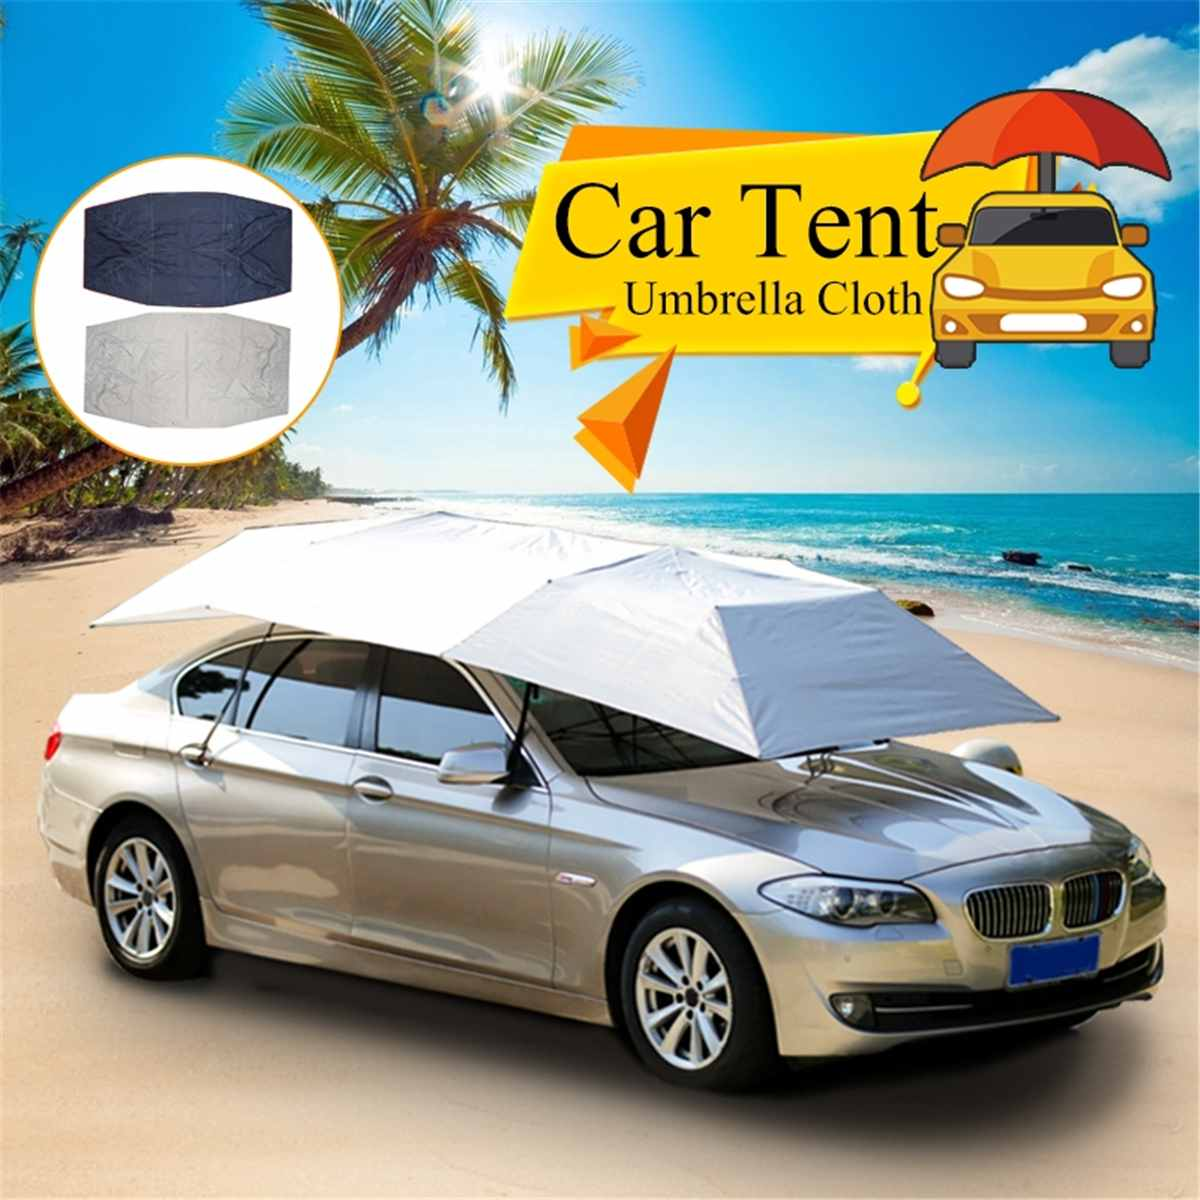 Full Automatic Car Umbrella Sun Shade Waterproof Outdoor Car Vehicle Tent Umbrella Sunshade Roof Cover Anti UV Cloth No StandFull Automatic Car Umbrella Sun Shade Waterproof Outdoor Car Vehicle Tent Umbrella Sunshade Roof Cover Anti UV Cloth No Stand